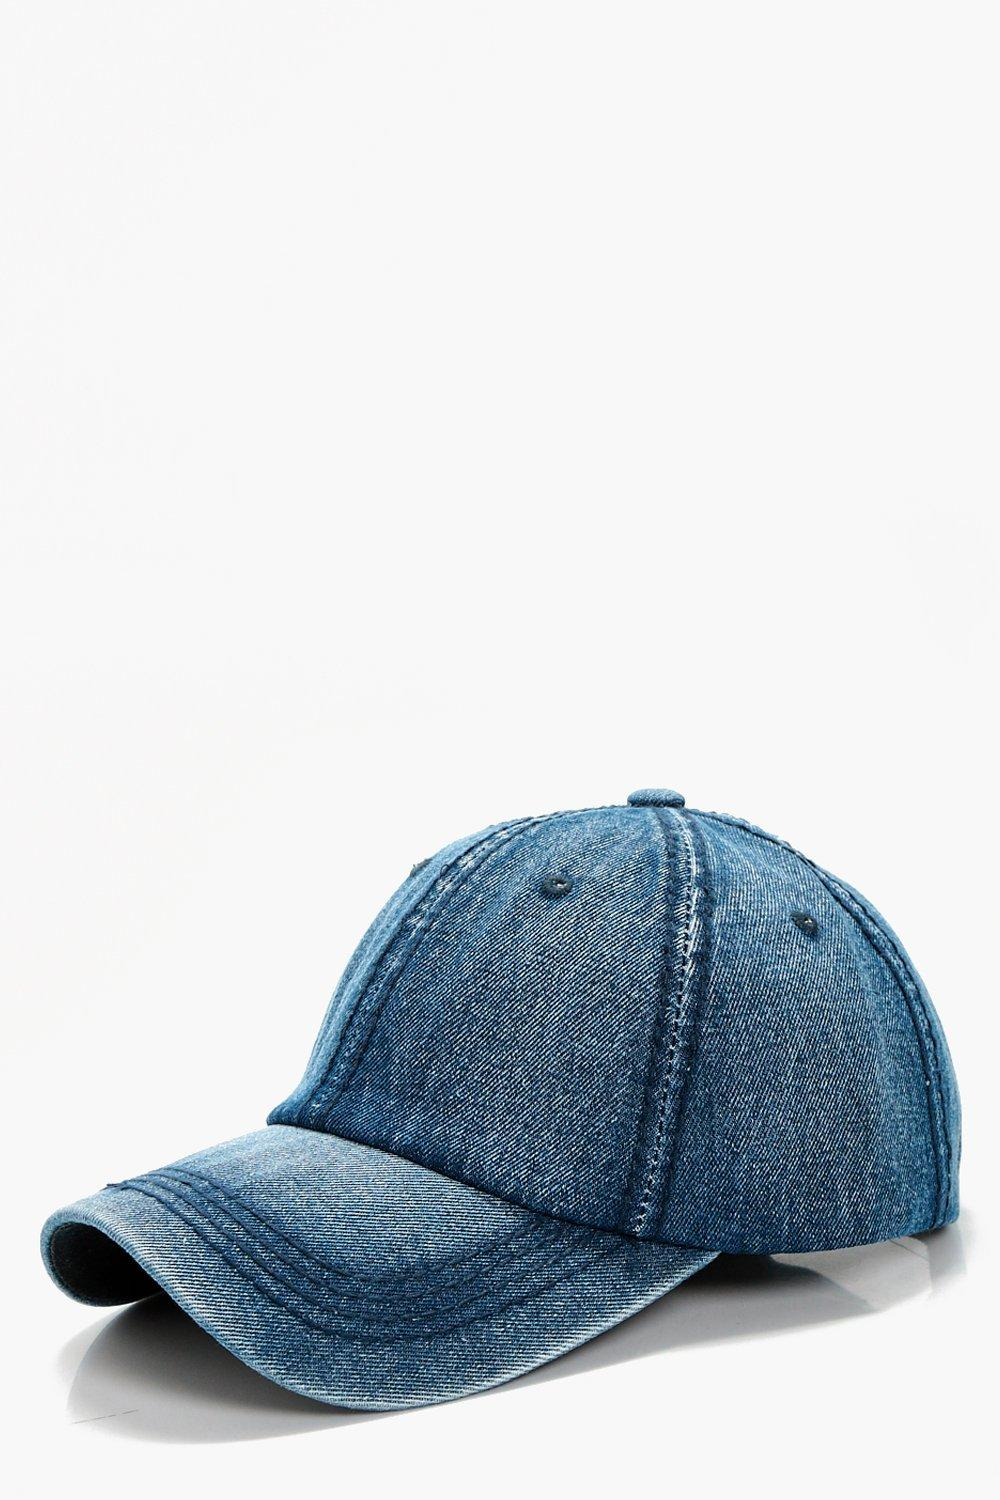 Denim Baseball cap - dark blue - Abigail Denim Bas